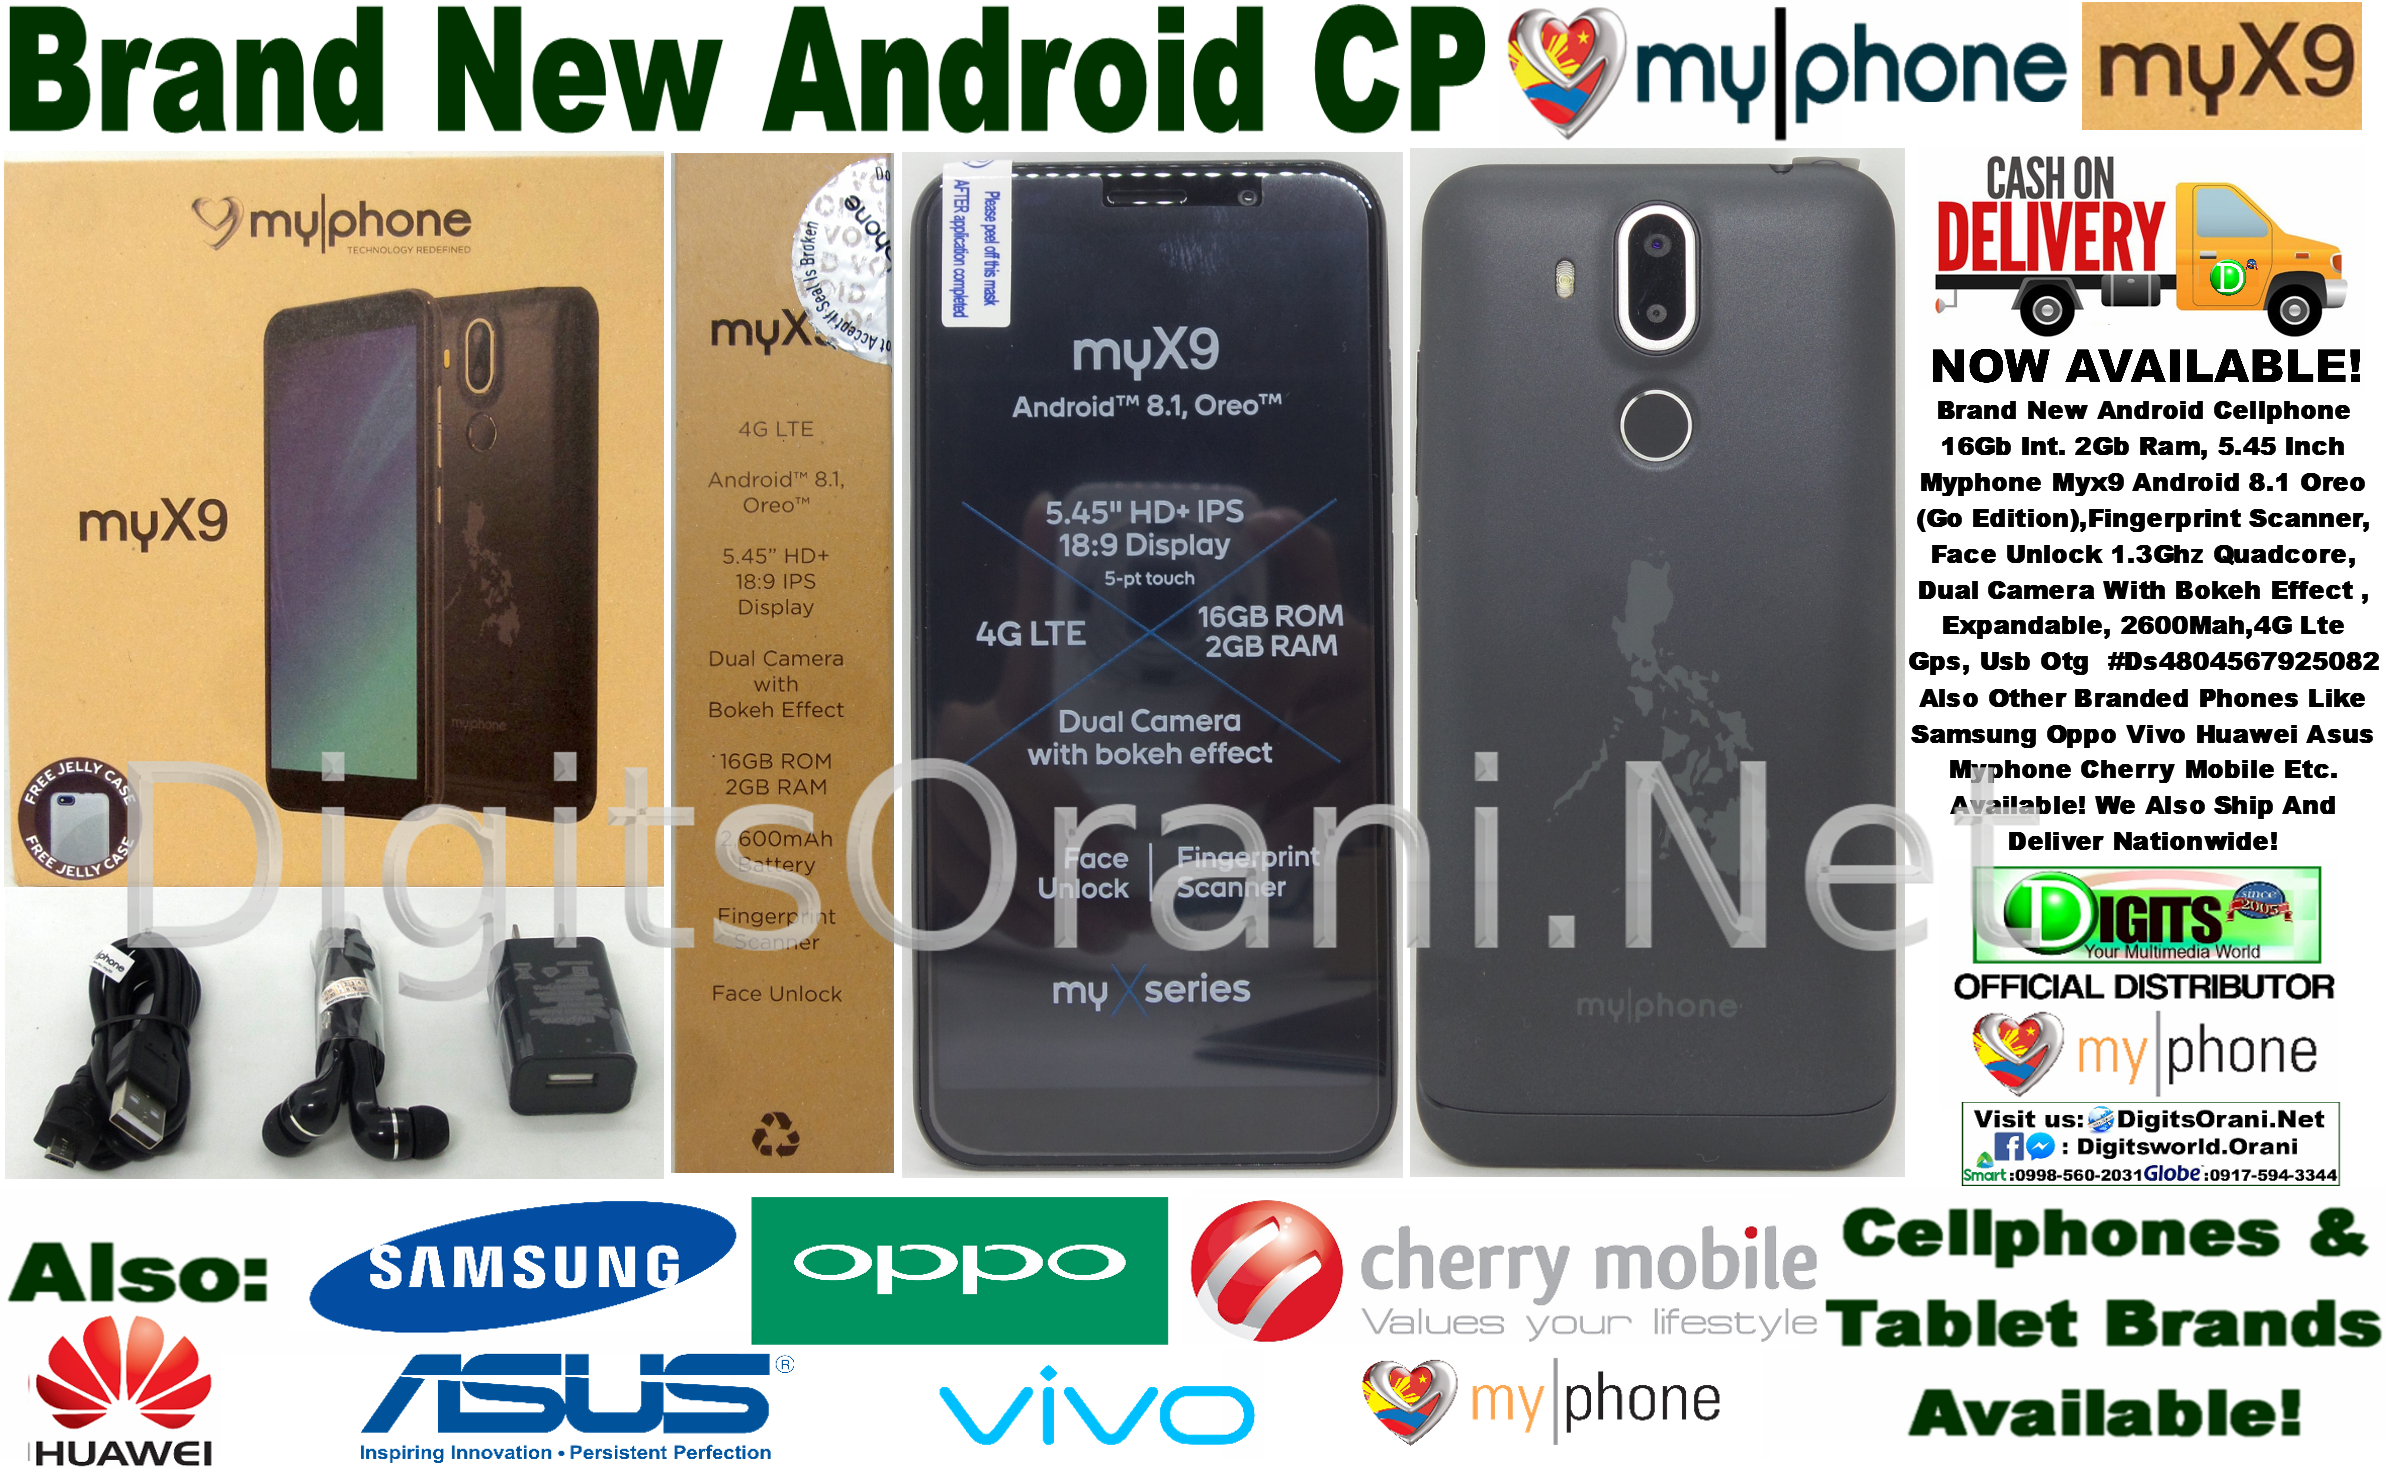 Android Cellphone 16Gb Int  2Gb Ram, 5 45 Inch Myphone Myx9 Android 8 1  Oreo (Go Edition),Fingerprint Scanner, Face Unlock 1 3Ghz Quadcore, Dual